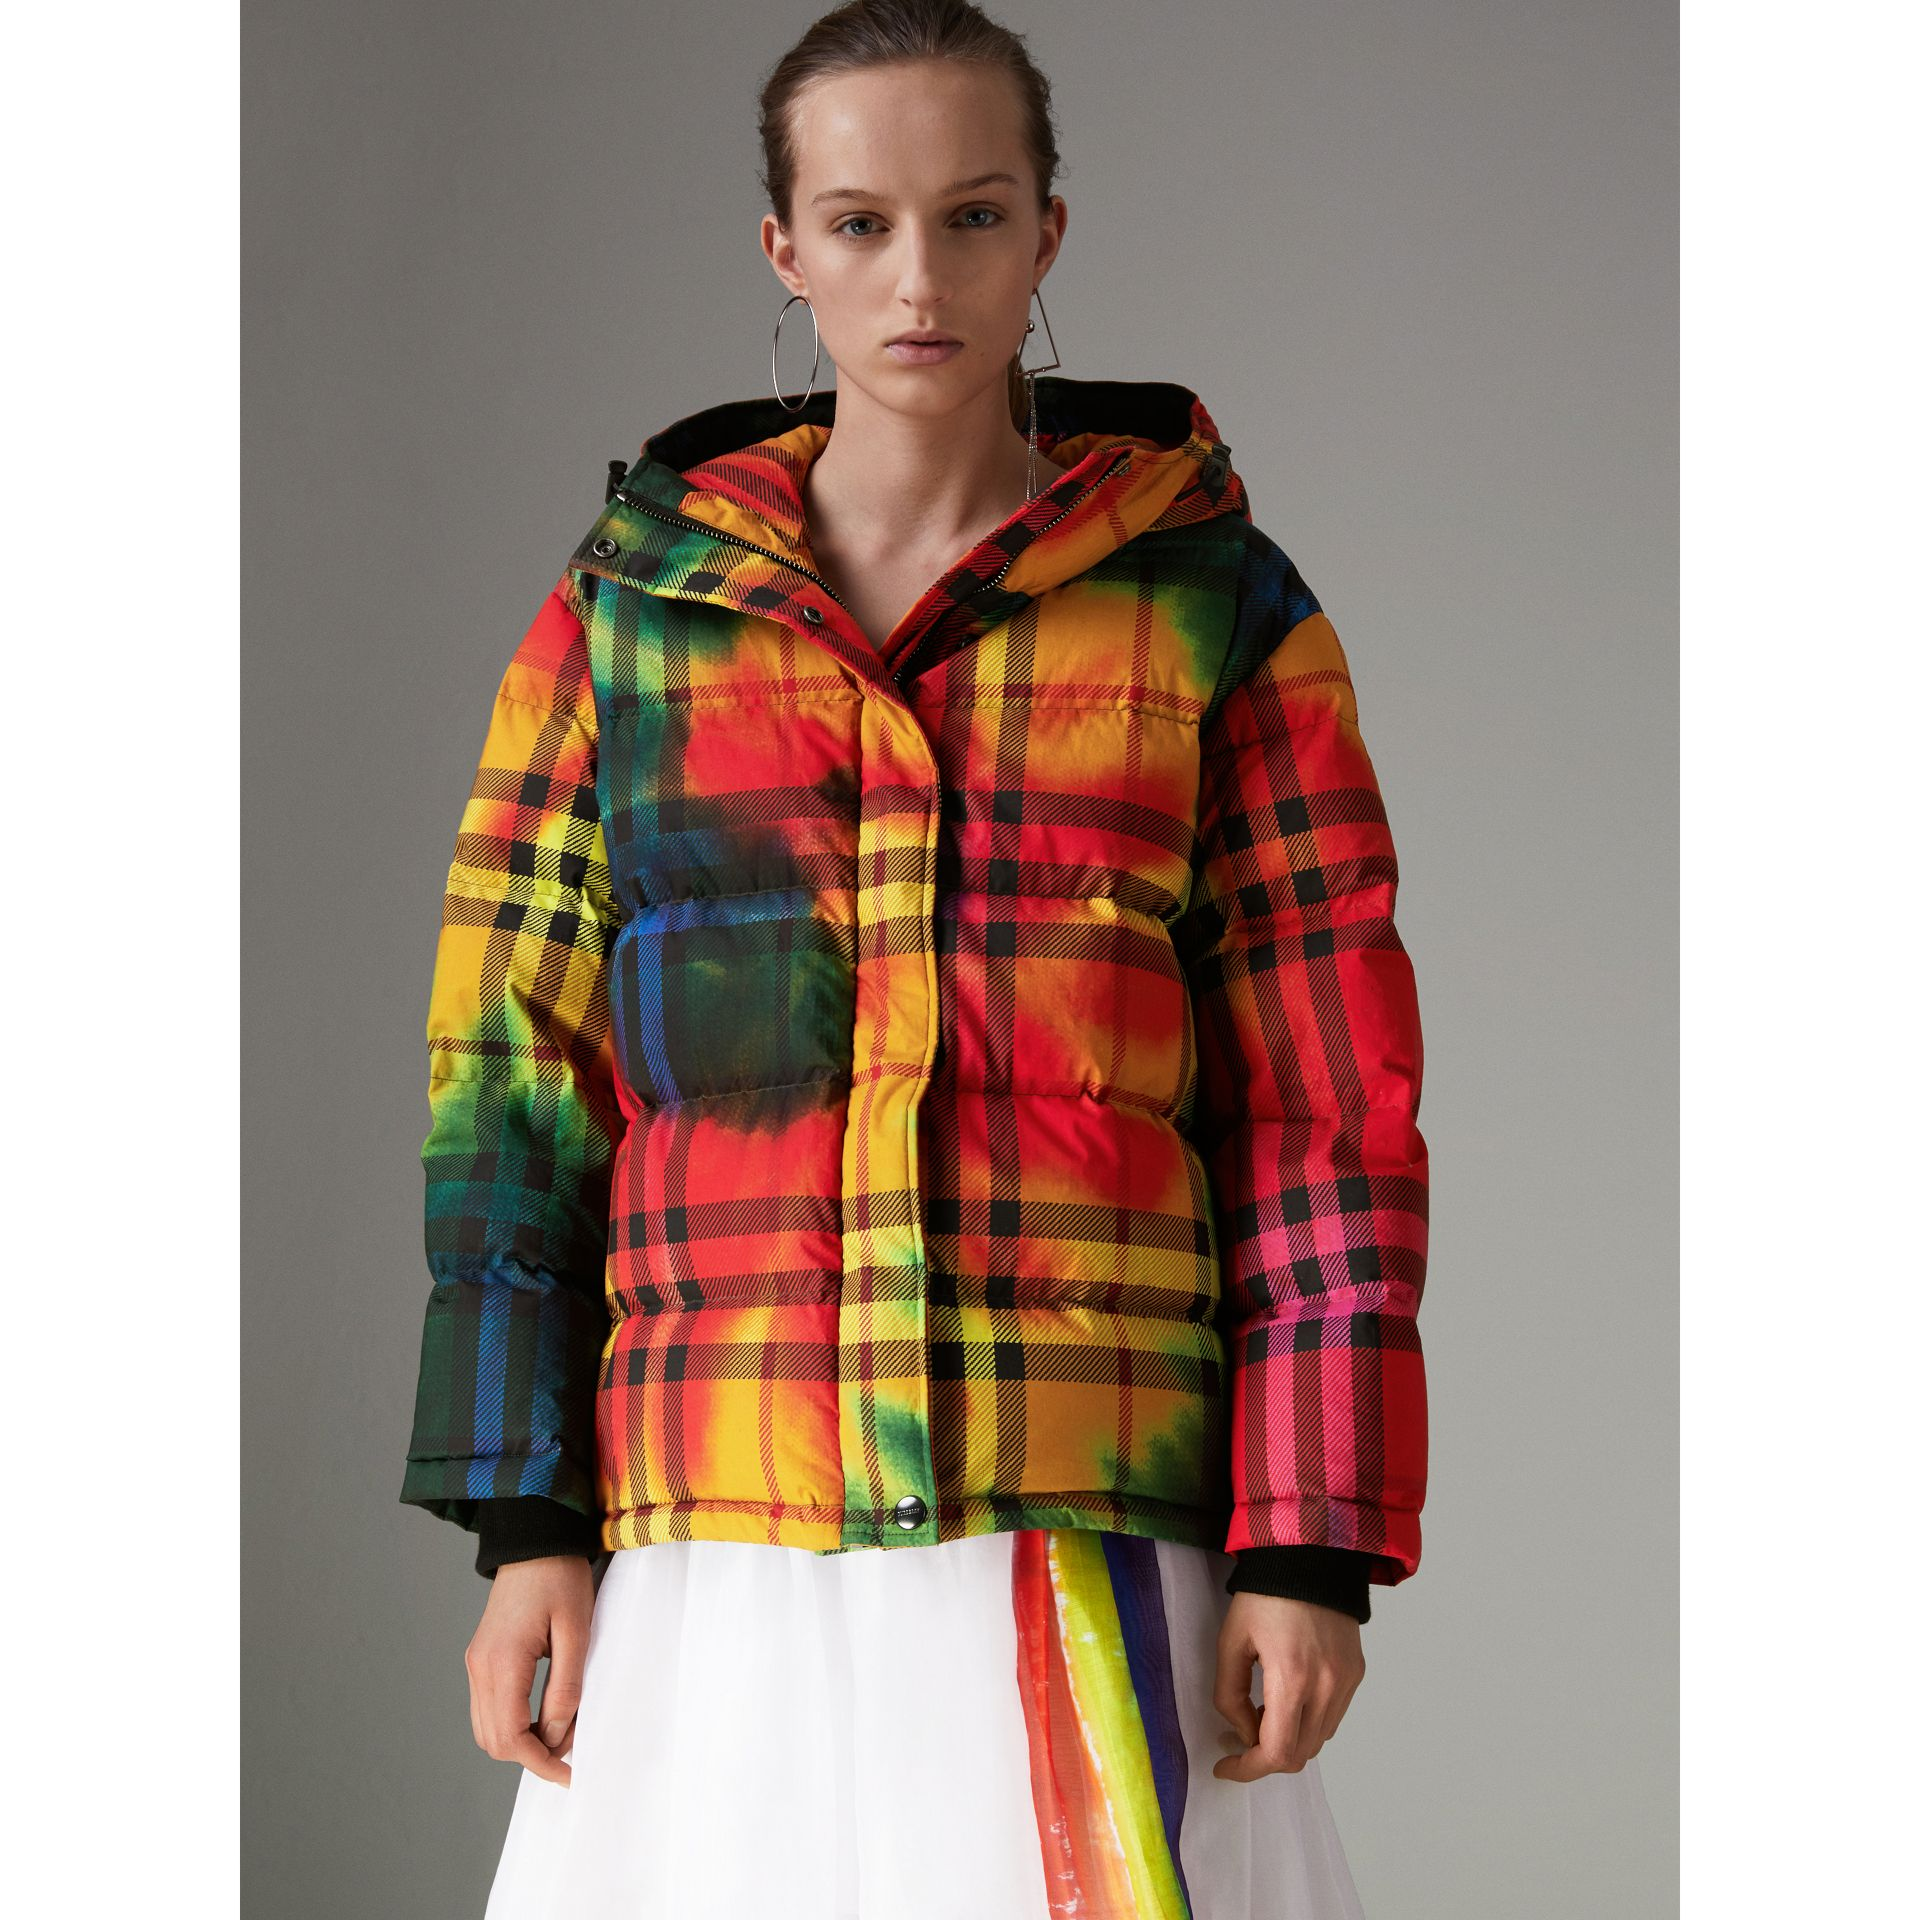 Tie-dye Print Vintage Check Puffer Jacket in Multicolour - Women | Burberry - gallery image 4